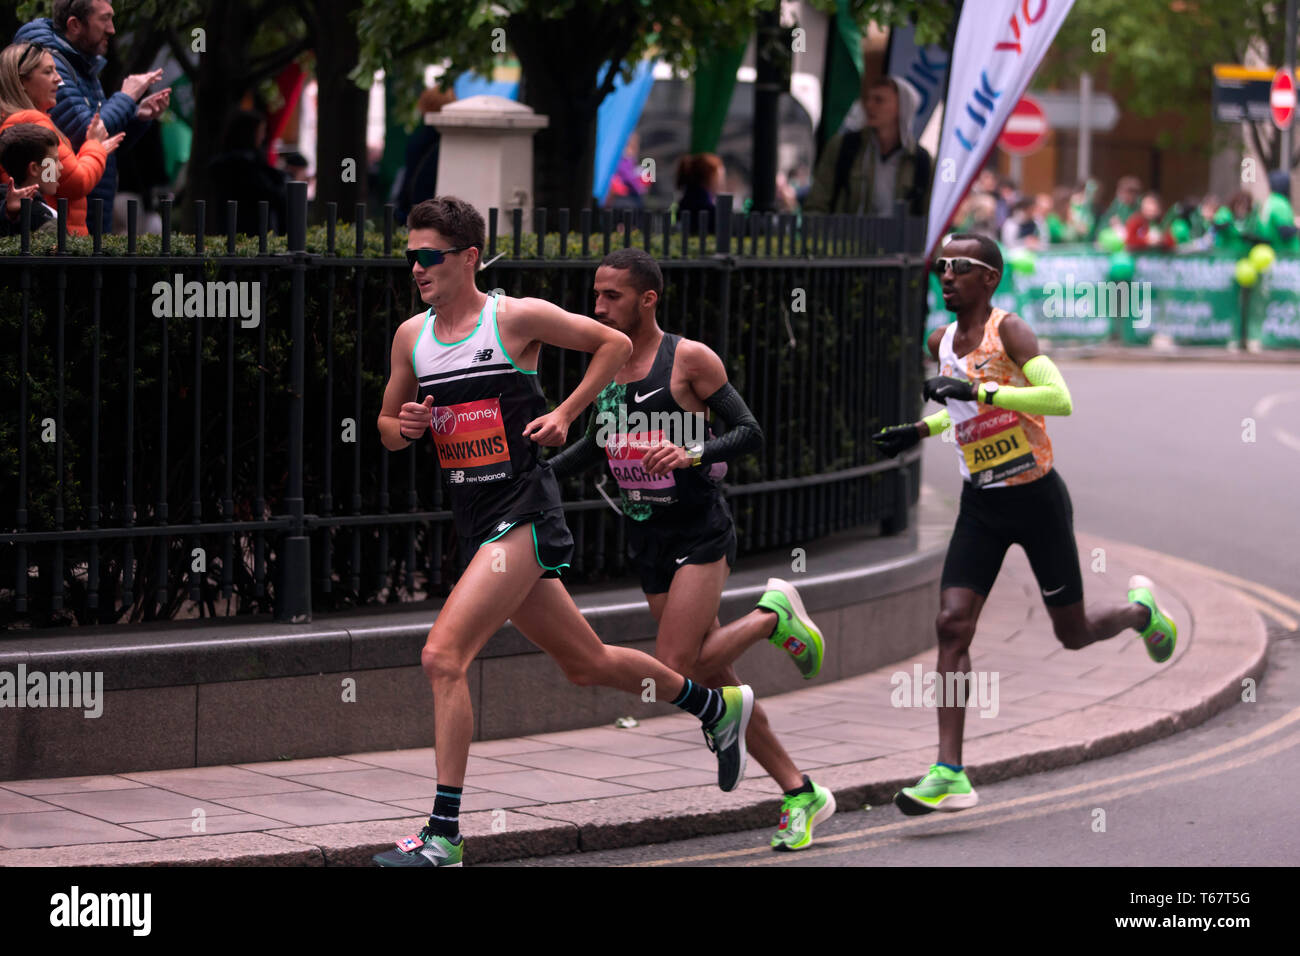 Callum Hawkins (GBR), Yassine Rachik (ITA) and Bashir Abdi (BEL), battling it out around Canary Wharf, during the 2019 London Marathon. They went on to finish 10th, 9th and 7th respectively  in the Men's elite race. Stock Photo